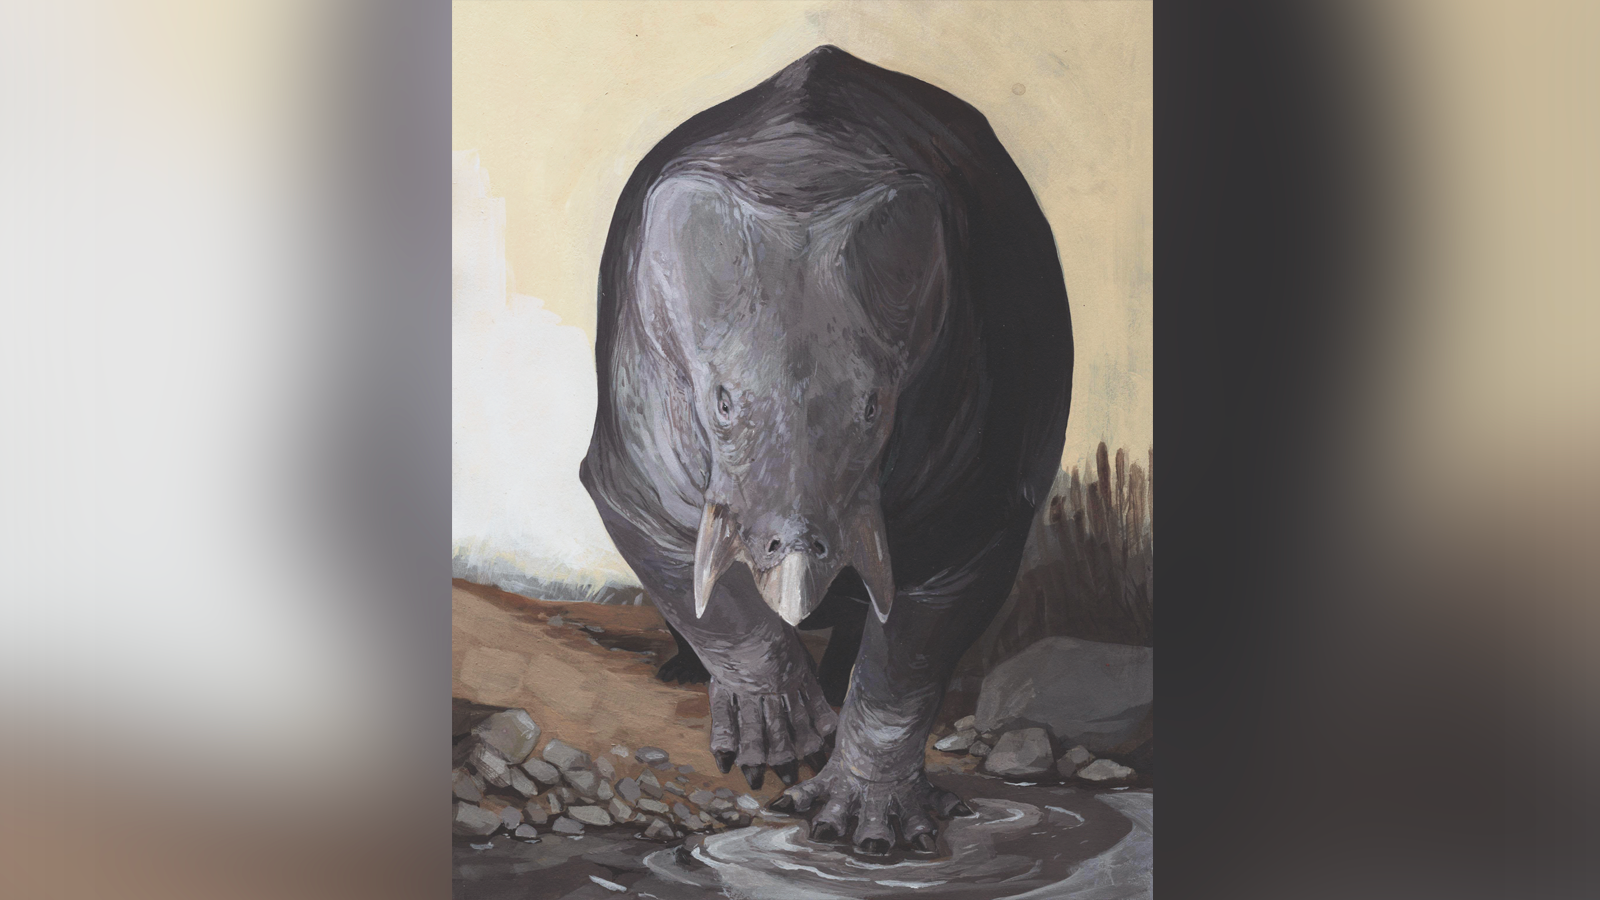 During The Triassic Period, This Elephant-Sized Relative Of Mammals Lived Alongside The Dinosaurs